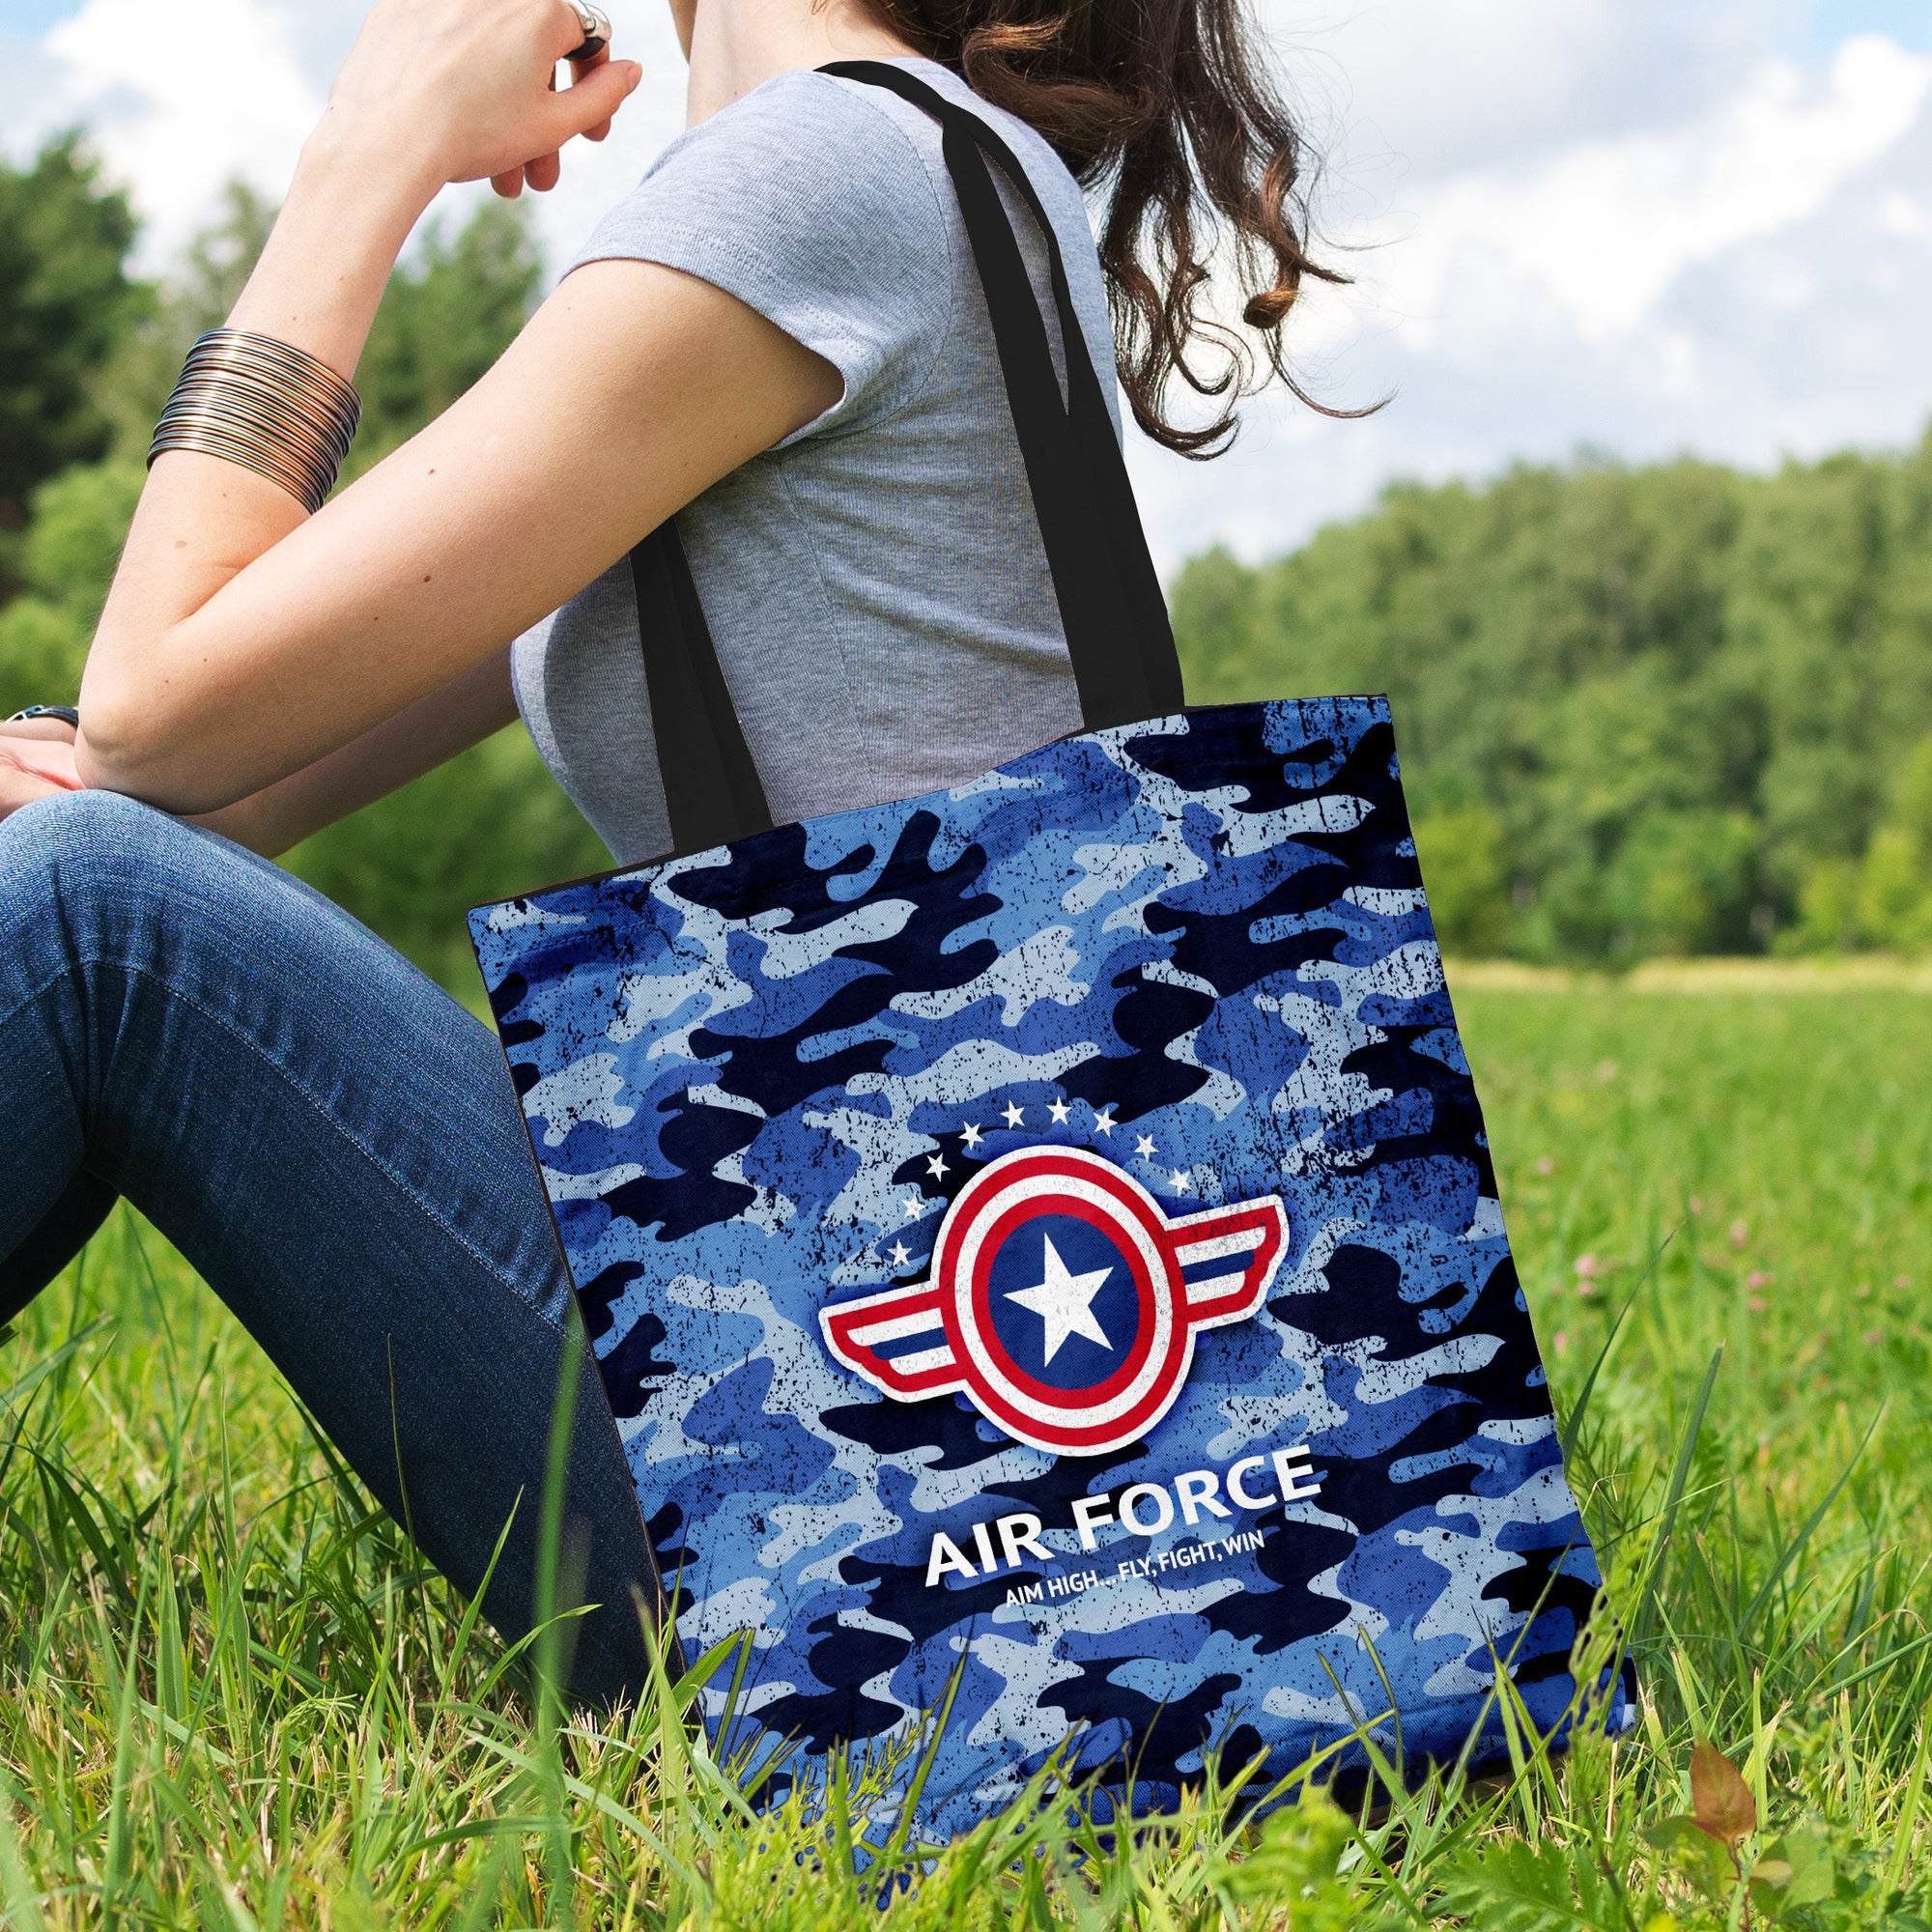 Air Force Tote Bag